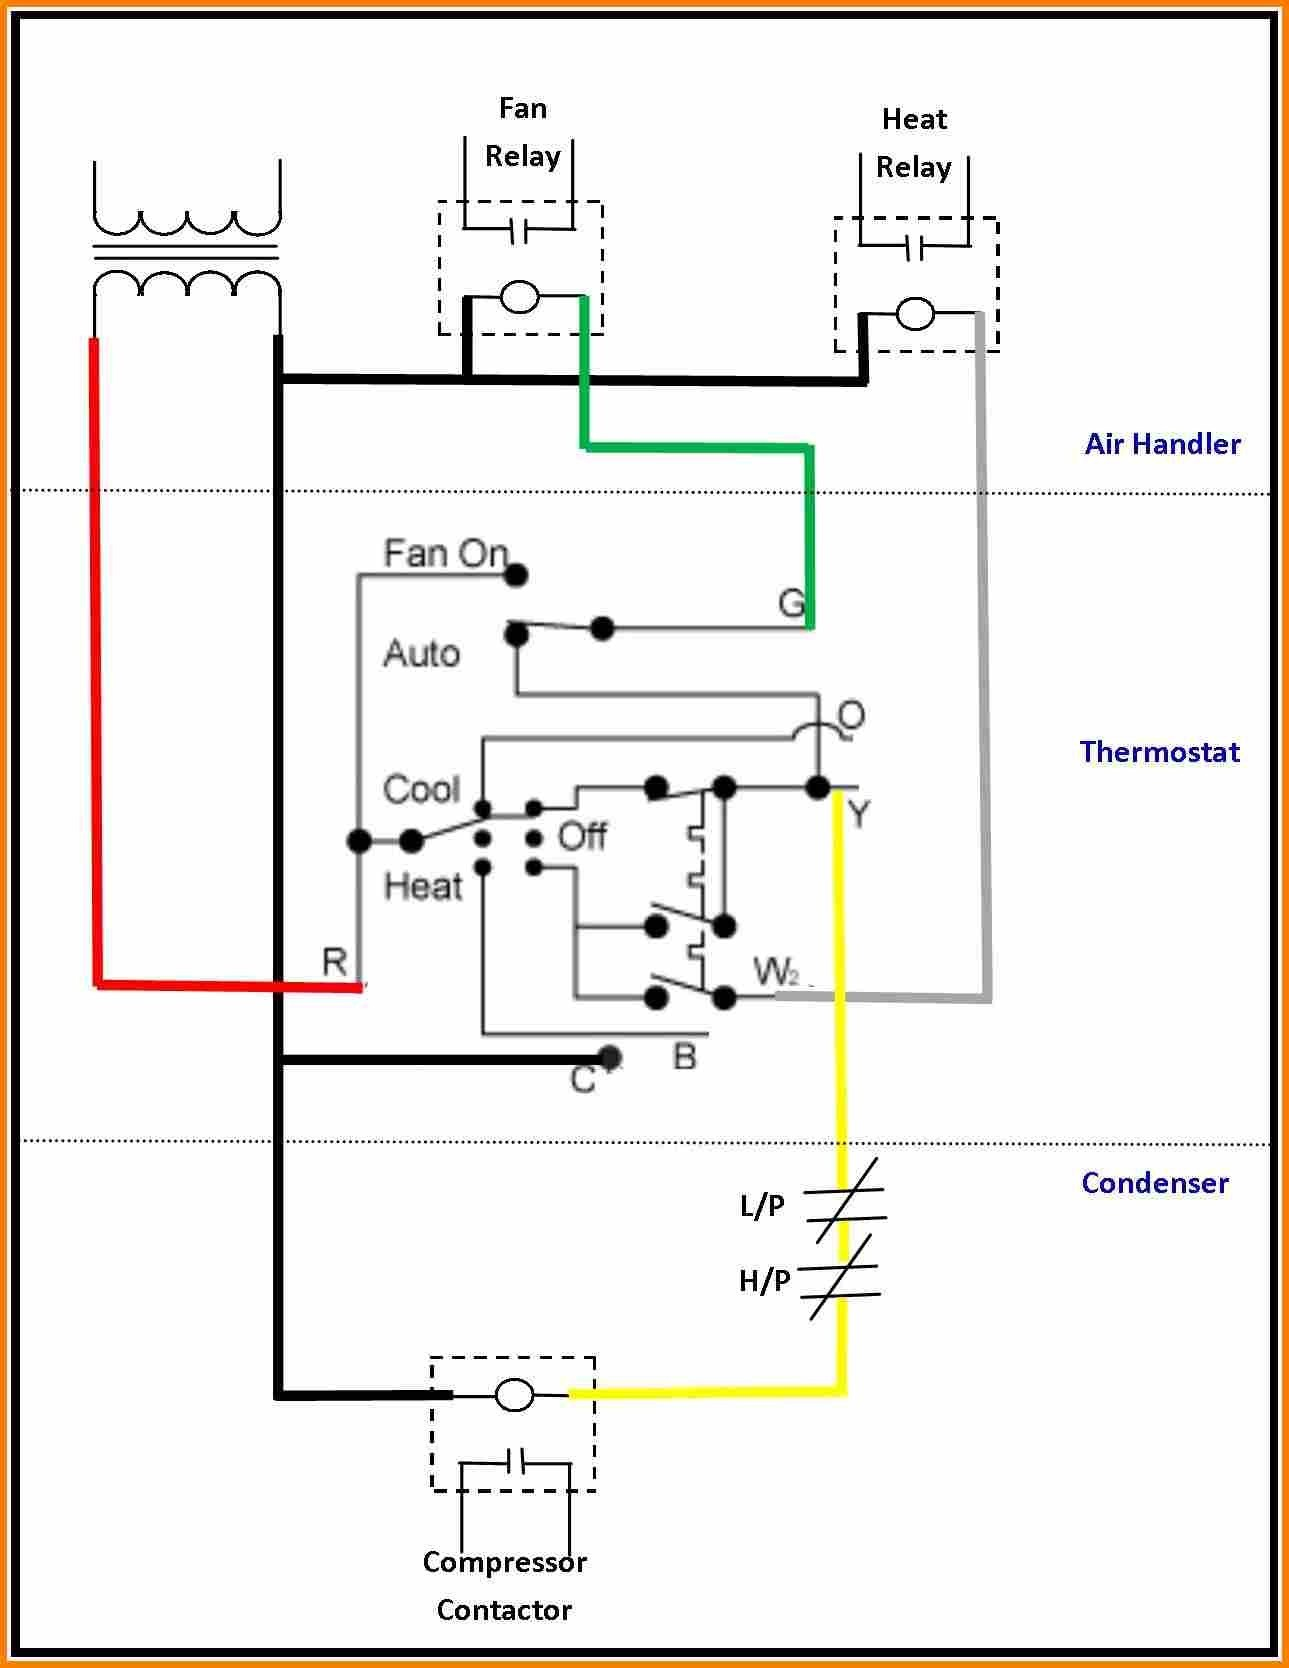 heating contractor wiring diagram wiring diagram portal u2022 rh graphiko co